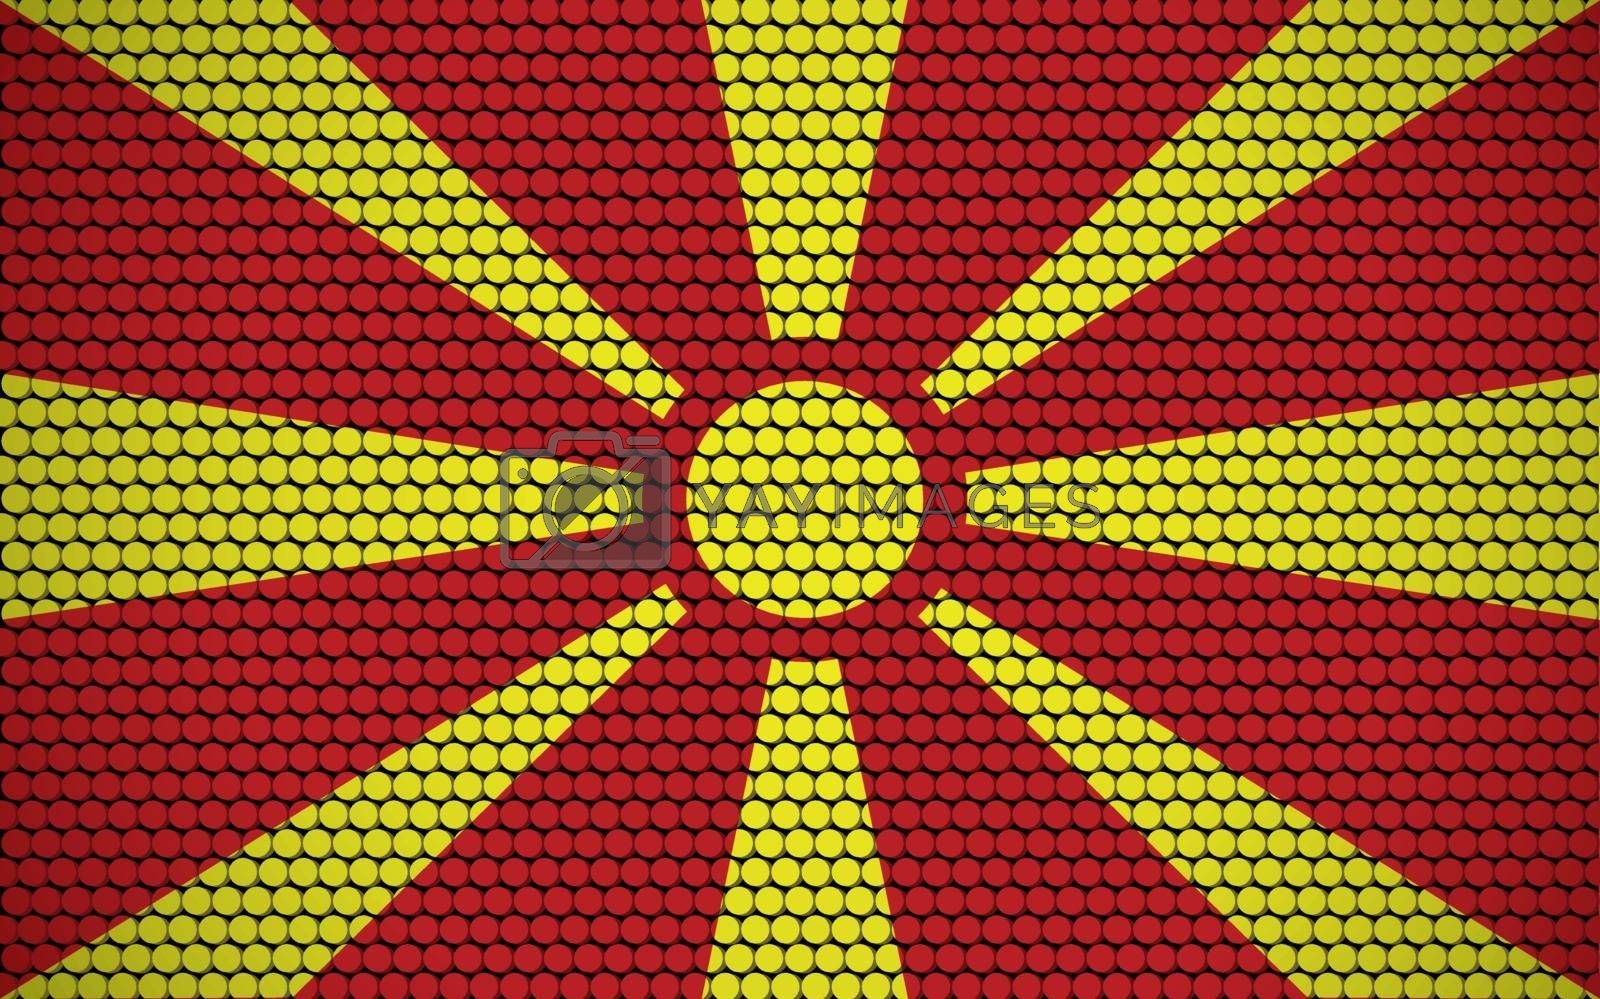 Abstract flag of Macedonia made of circles. Macedonian flag designed with colored dots giving it a modern and futuristic abstract look.